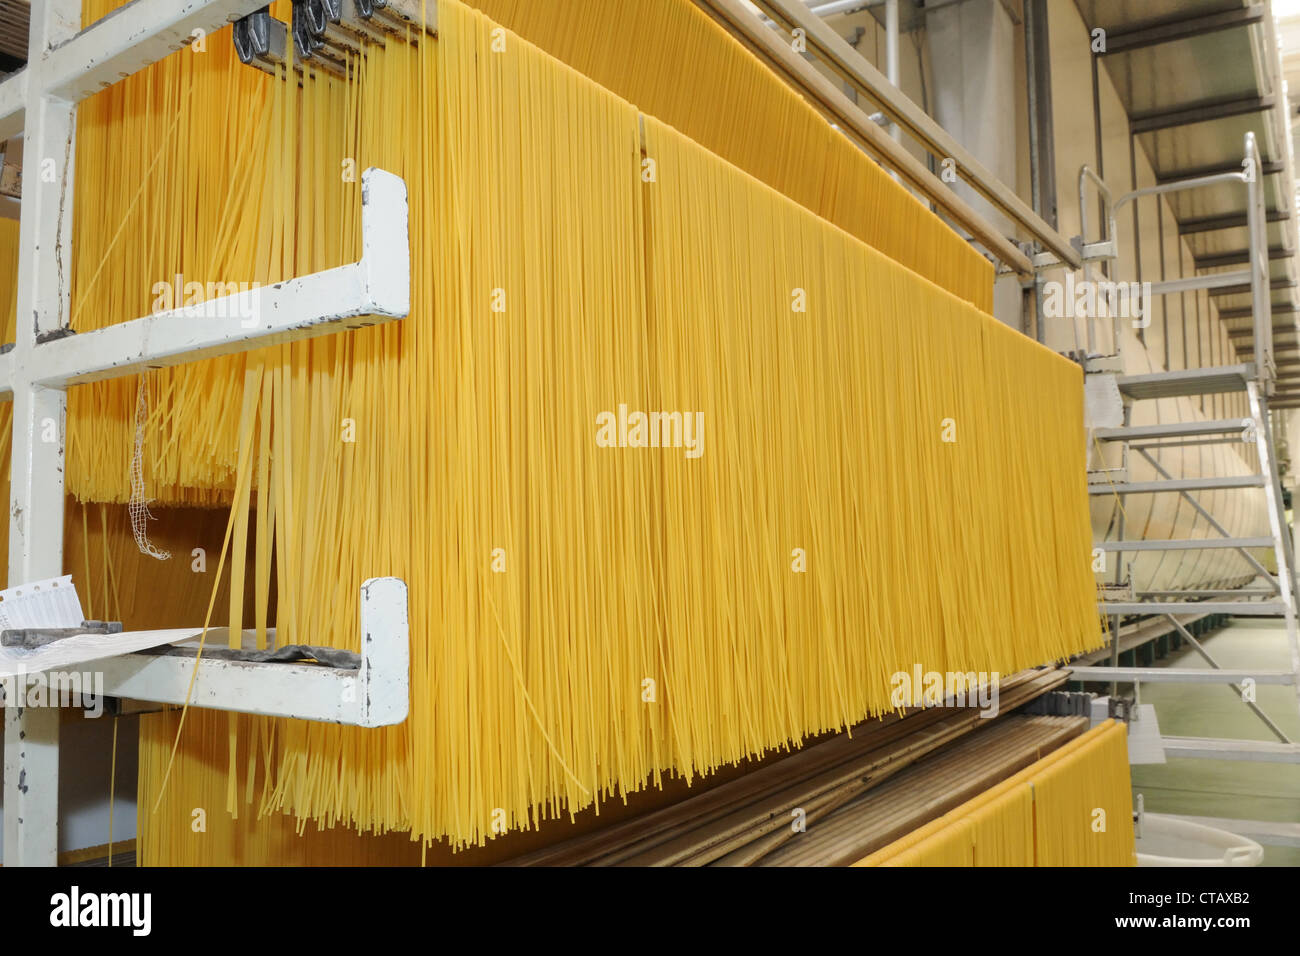 Hung out to dry spaghetti Photo Stock